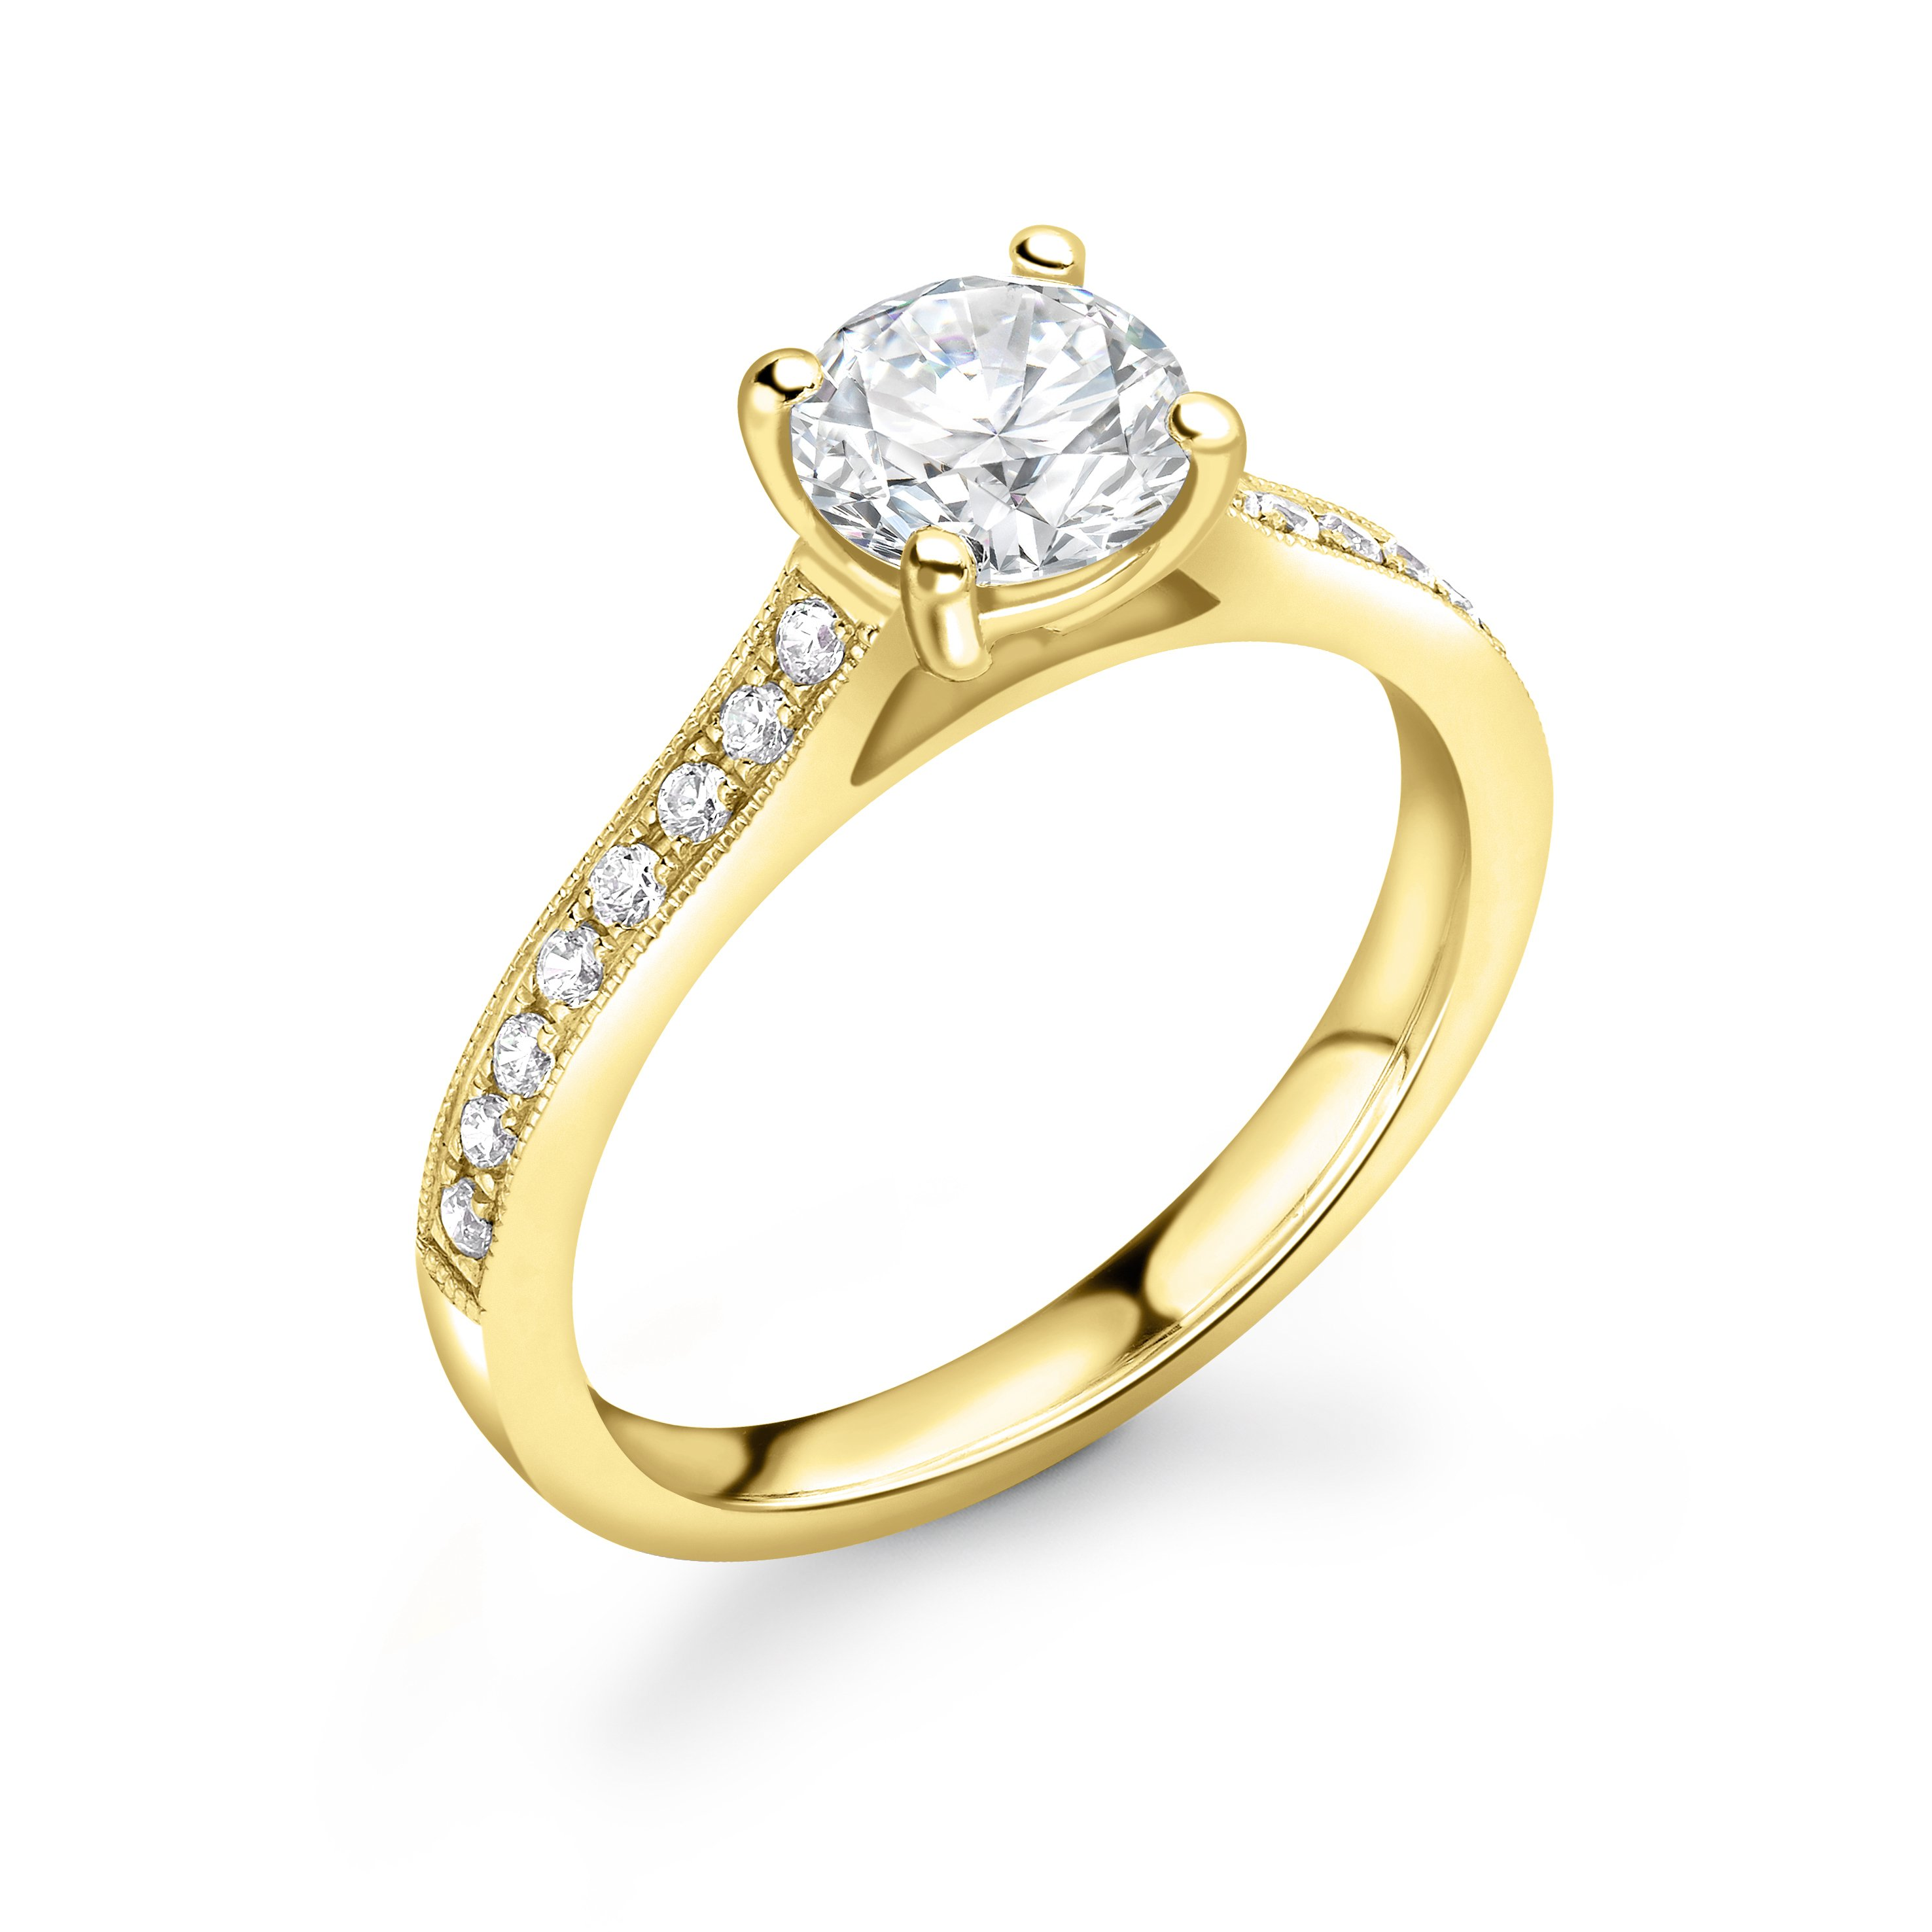 Miligrain Edge Shoulder Classic Side Stone Diamond Engagement Rings